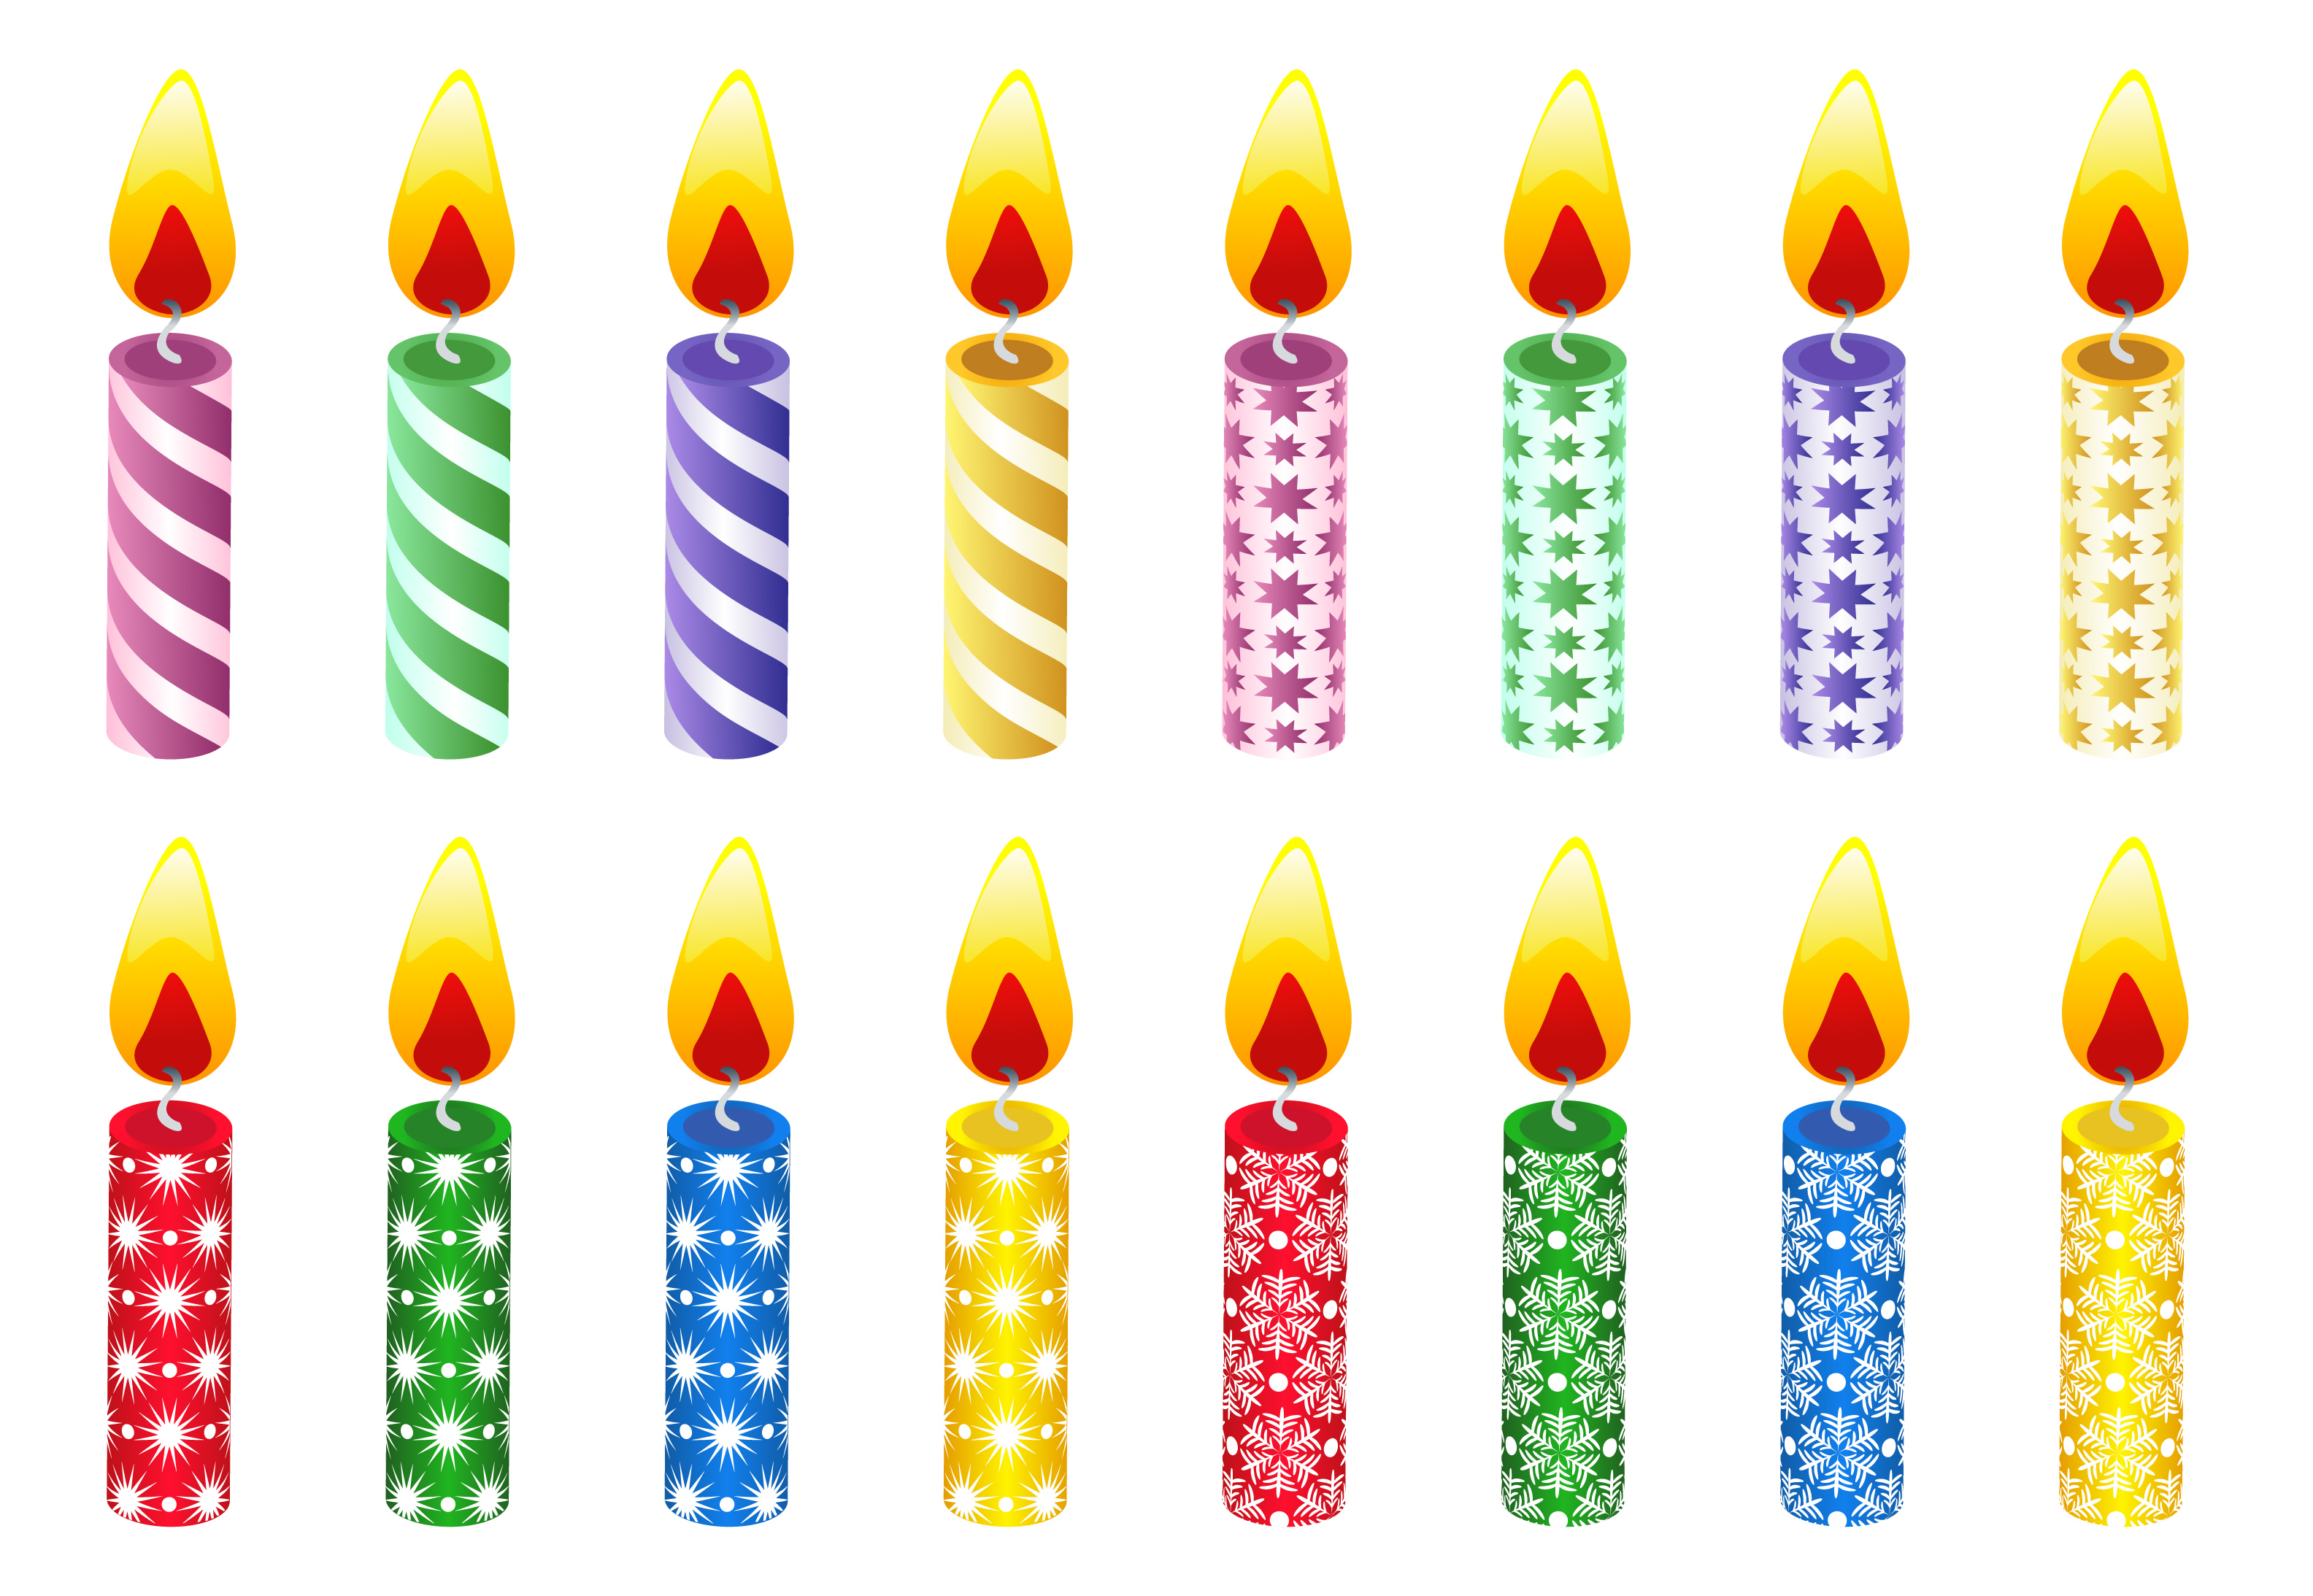 This Is A Great Set Of Birthday Candles -This Is A Great Set Of Birthday Candles To Use For Games Or Classroom-14